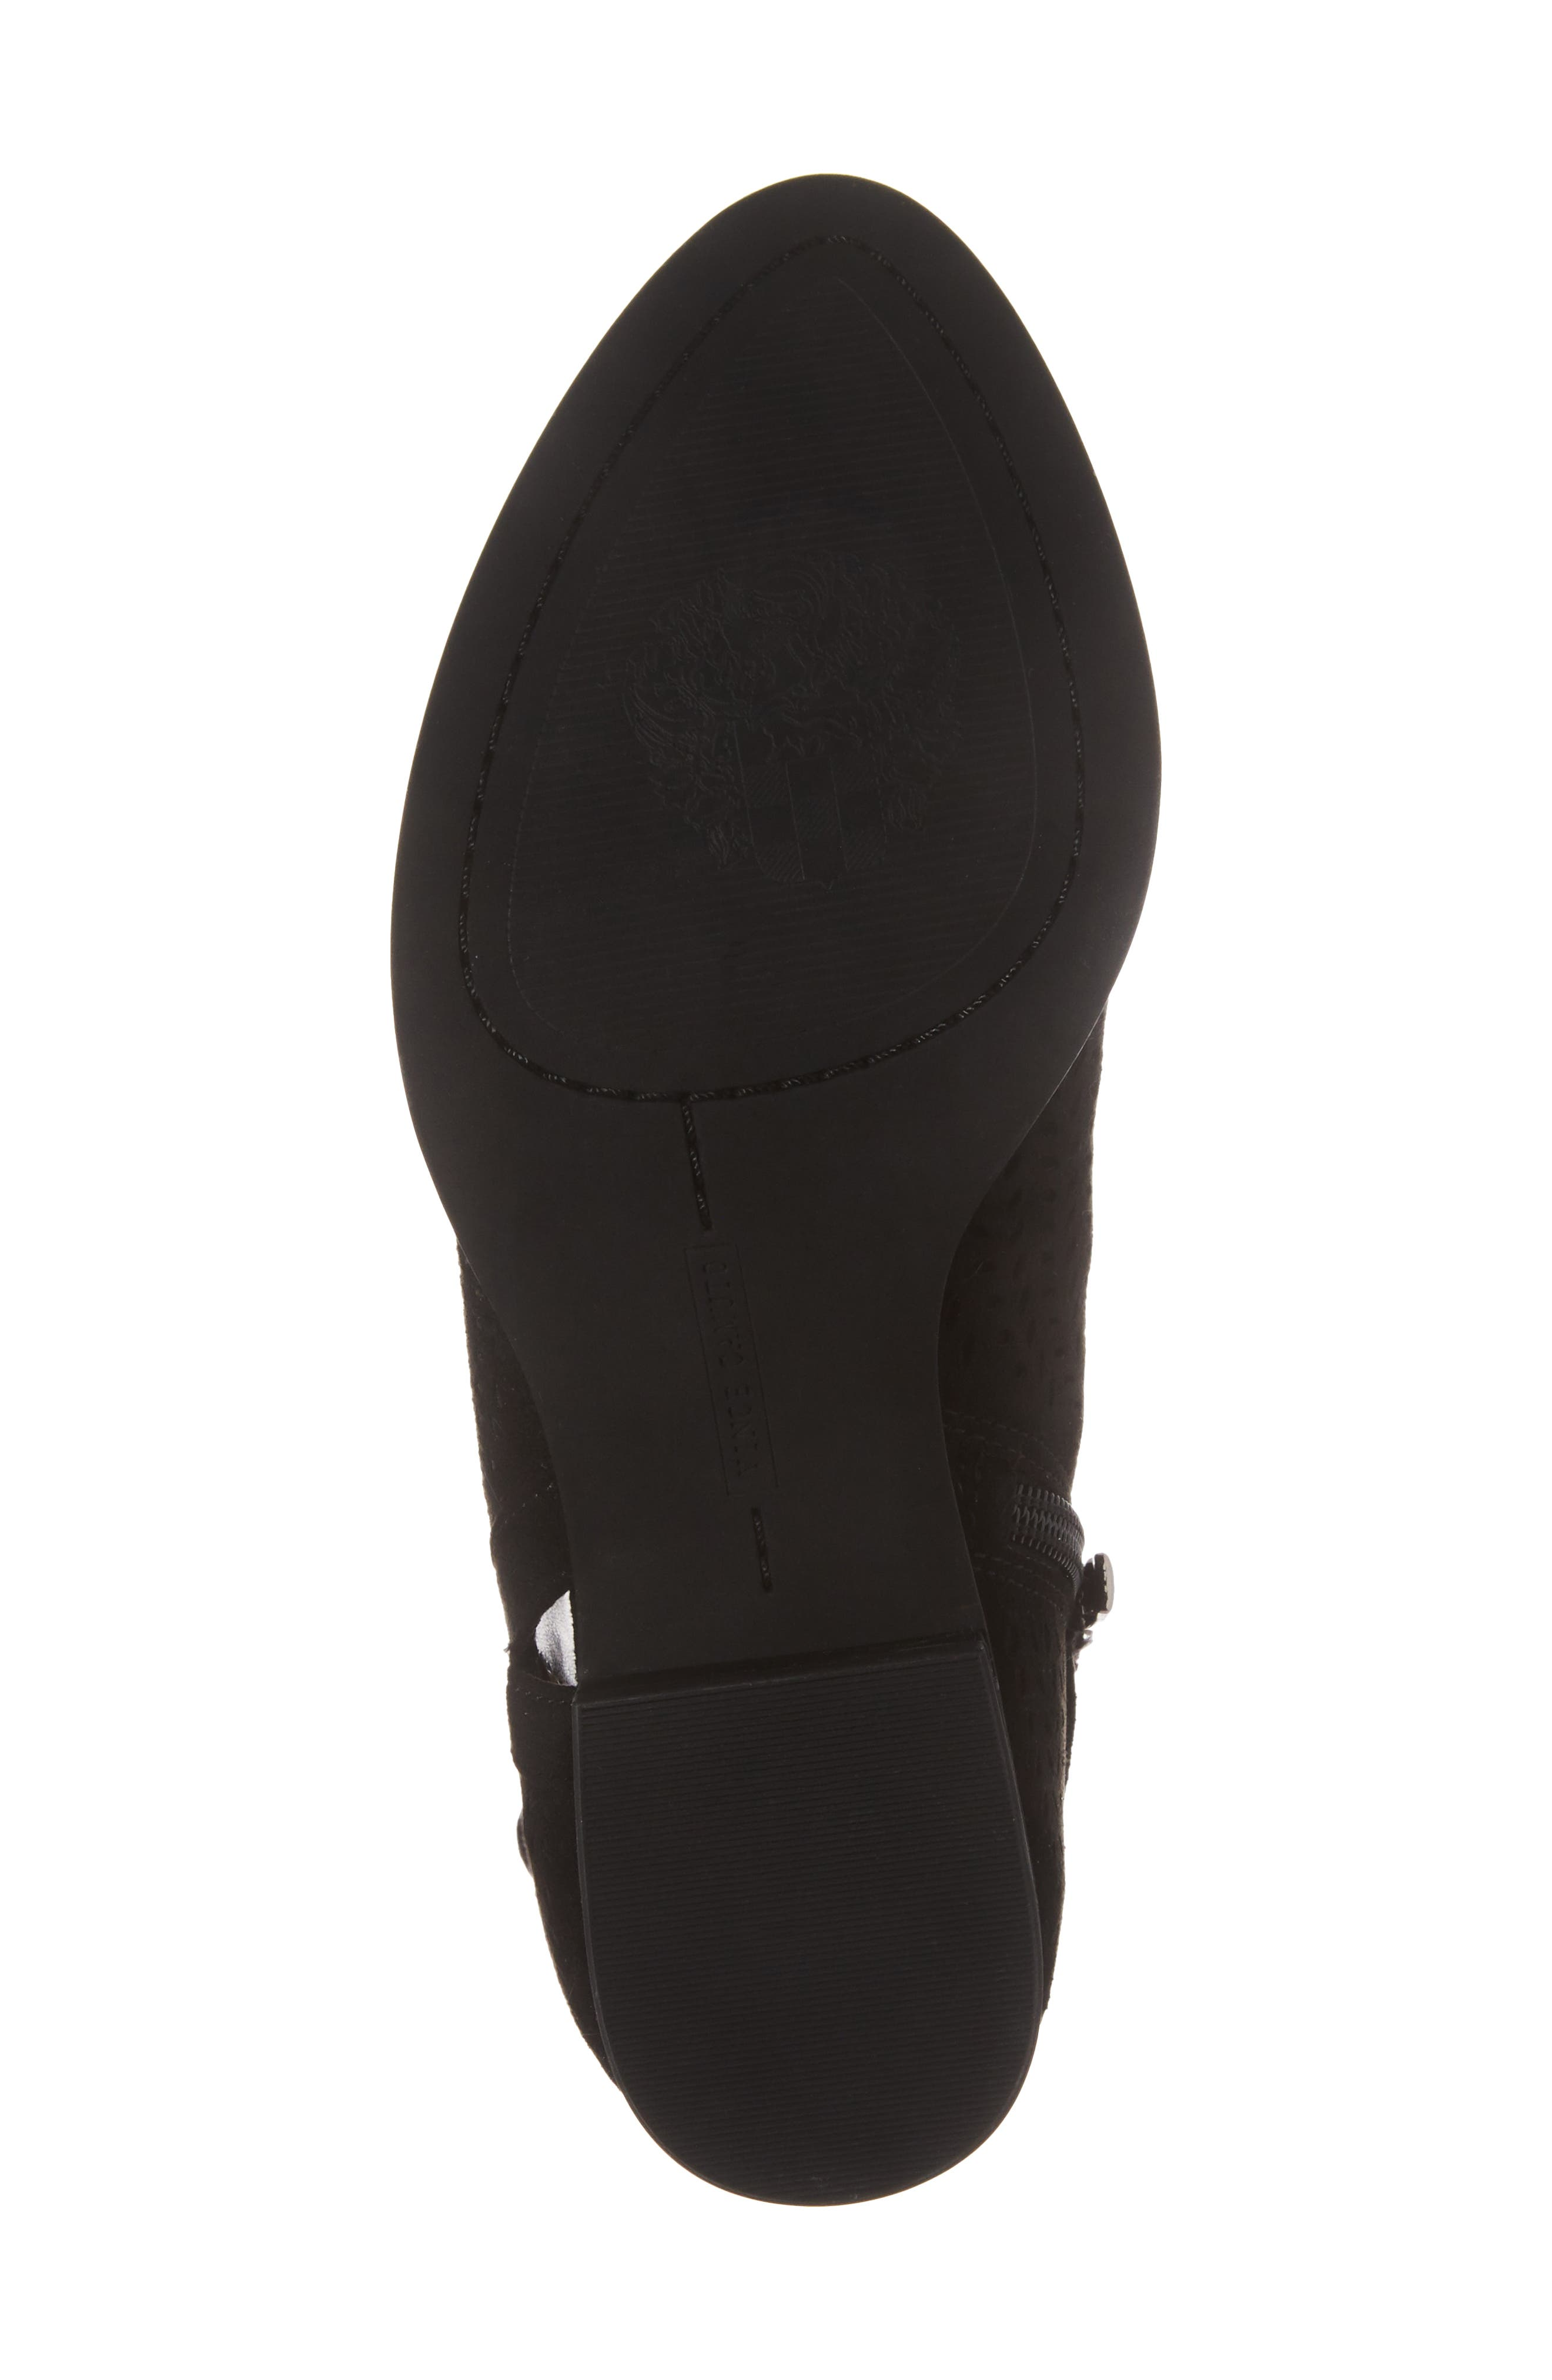 Campina Perforated Bootie,                             Alternate thumbnail 6, color,                             BLACK SUEDE